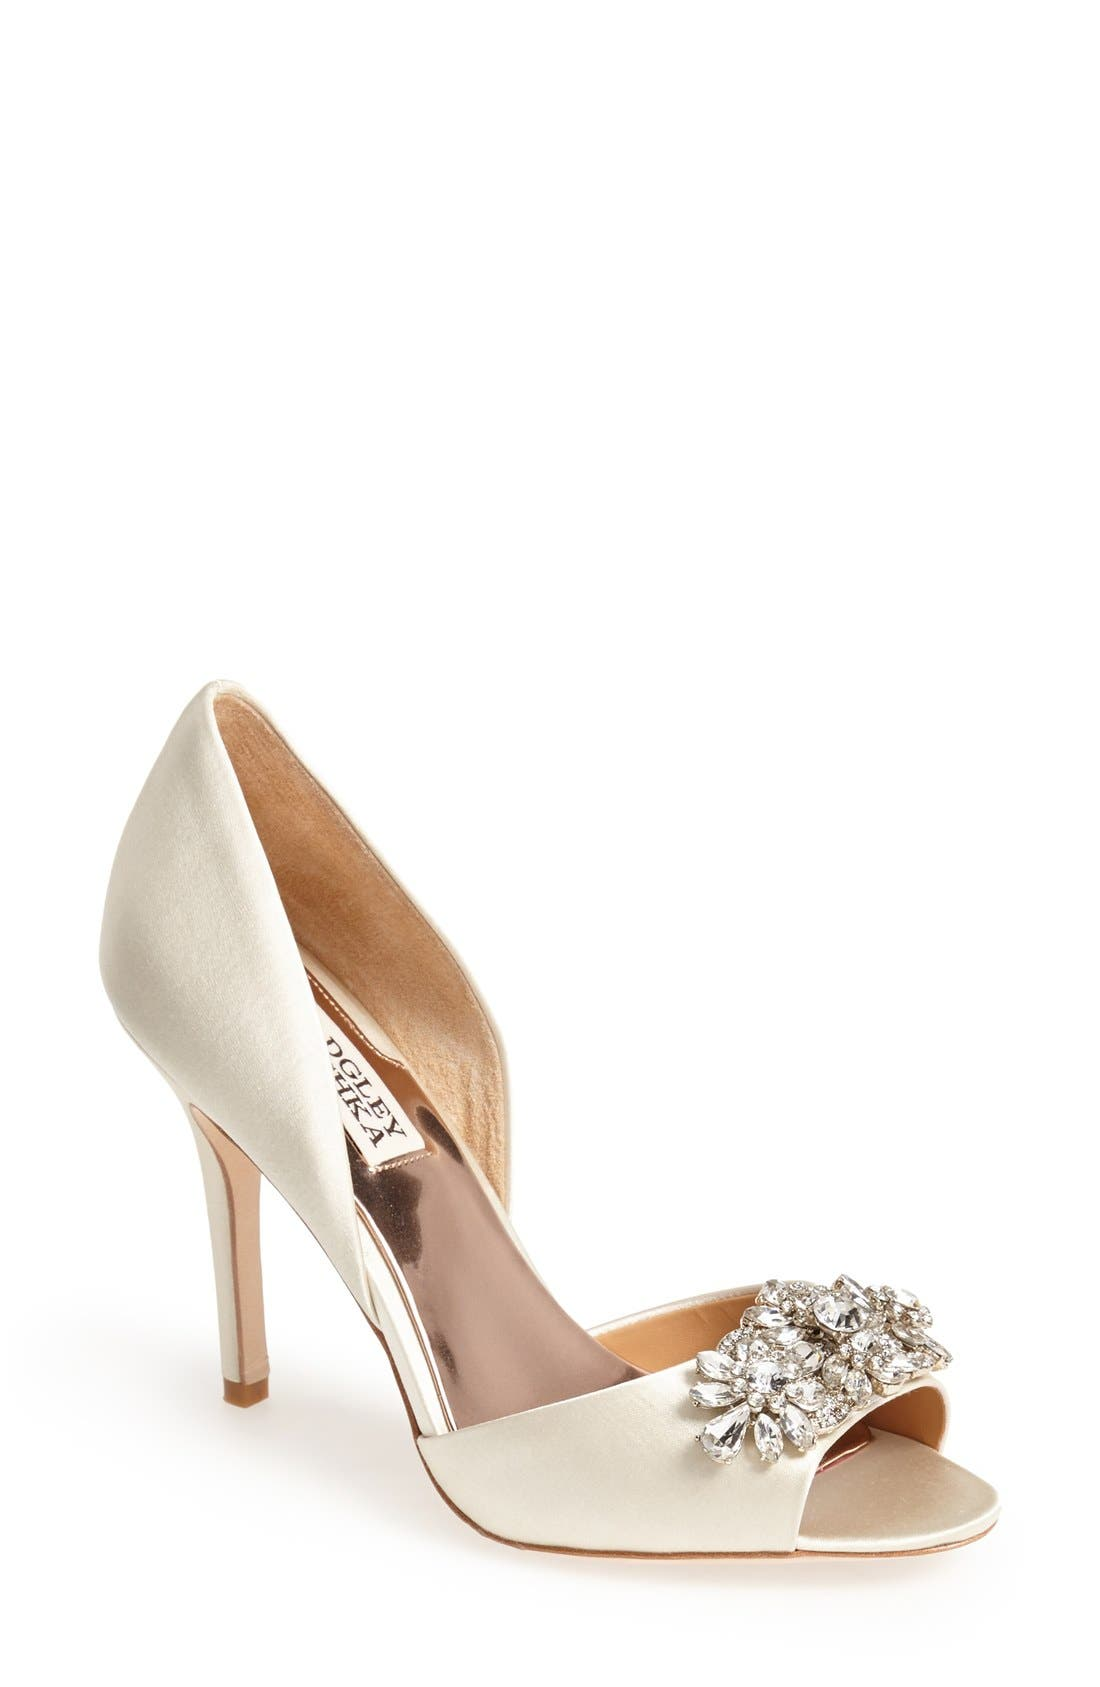 Badgley Mischka 'Giana' Satin d'Orsay Pump,                         Main,                         color, 901